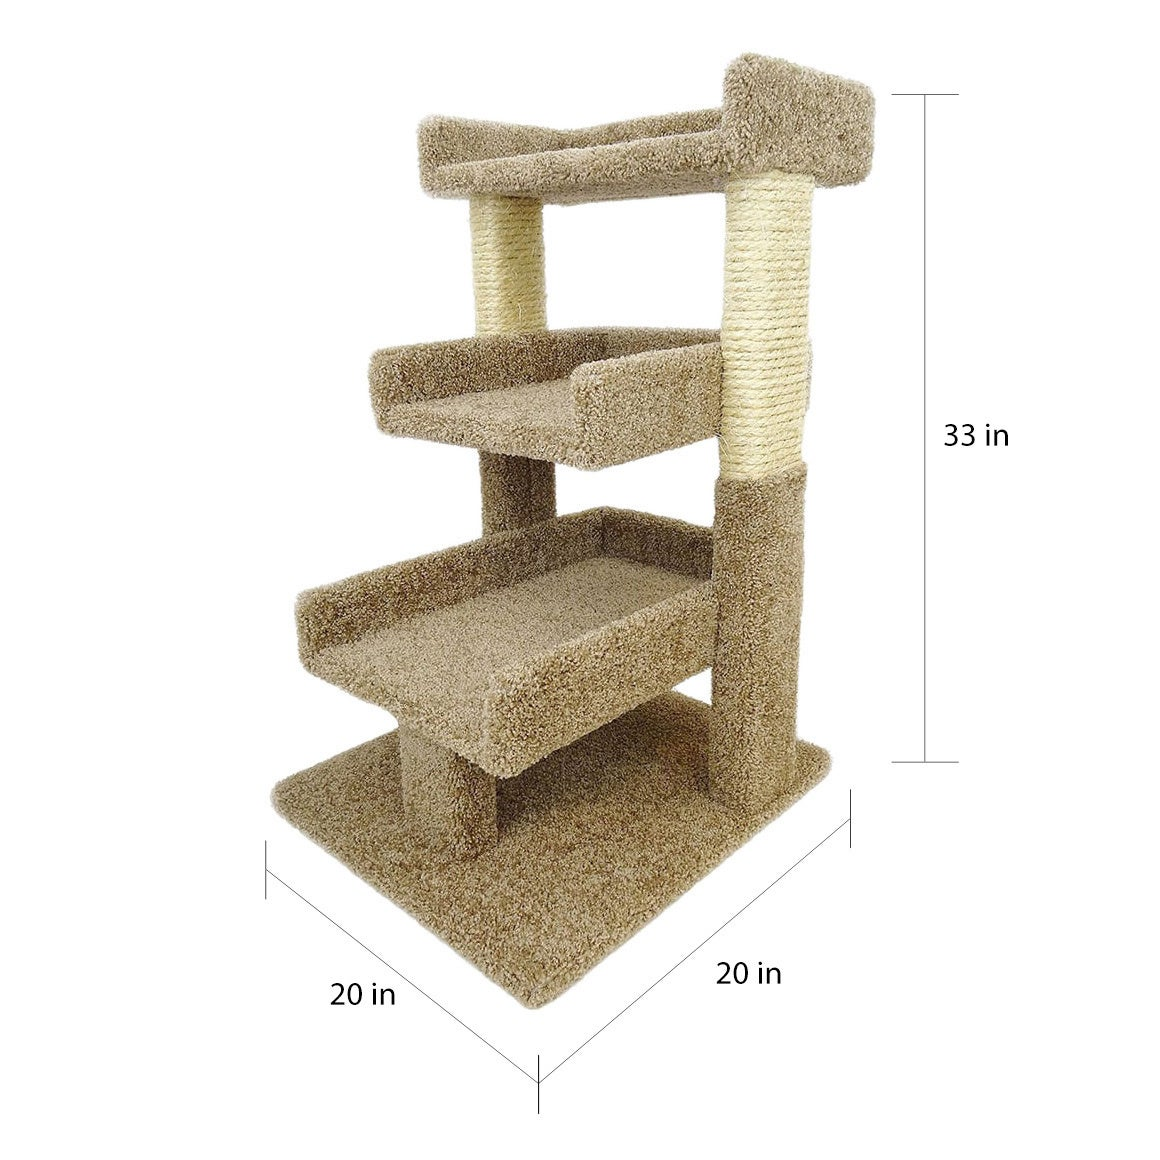 New Cat Condos Sisal Rope 33 Inch Triple Perch Free Shipping Today 6165774